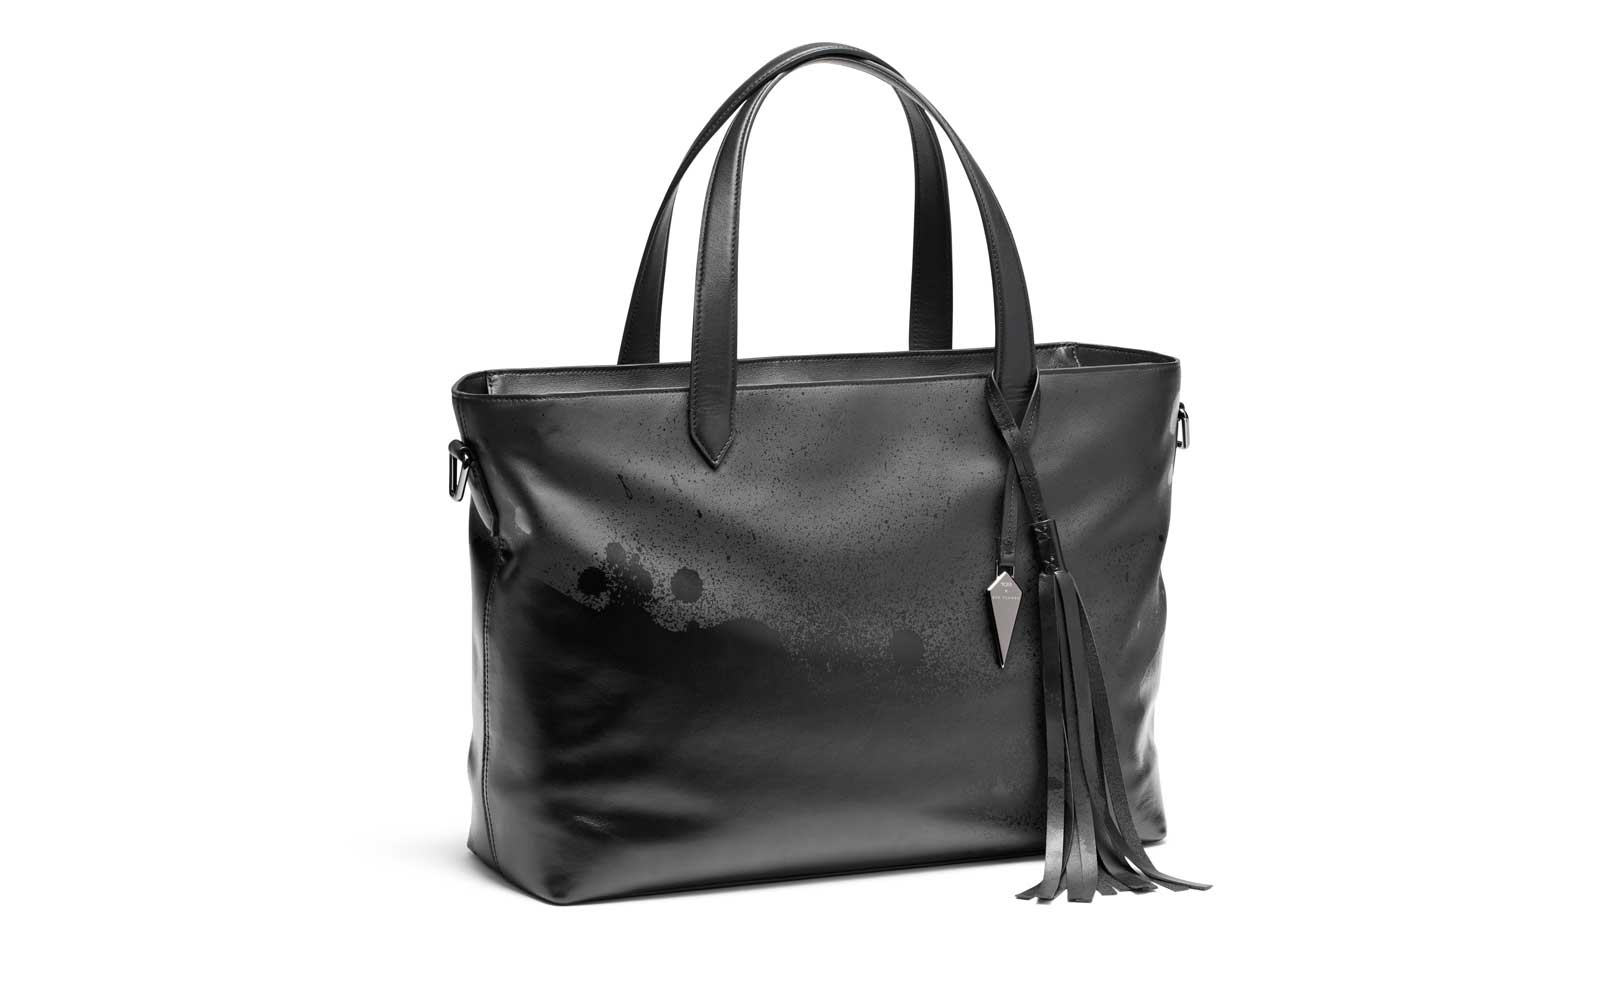 Black Bag from Eva Fehren and Tumi